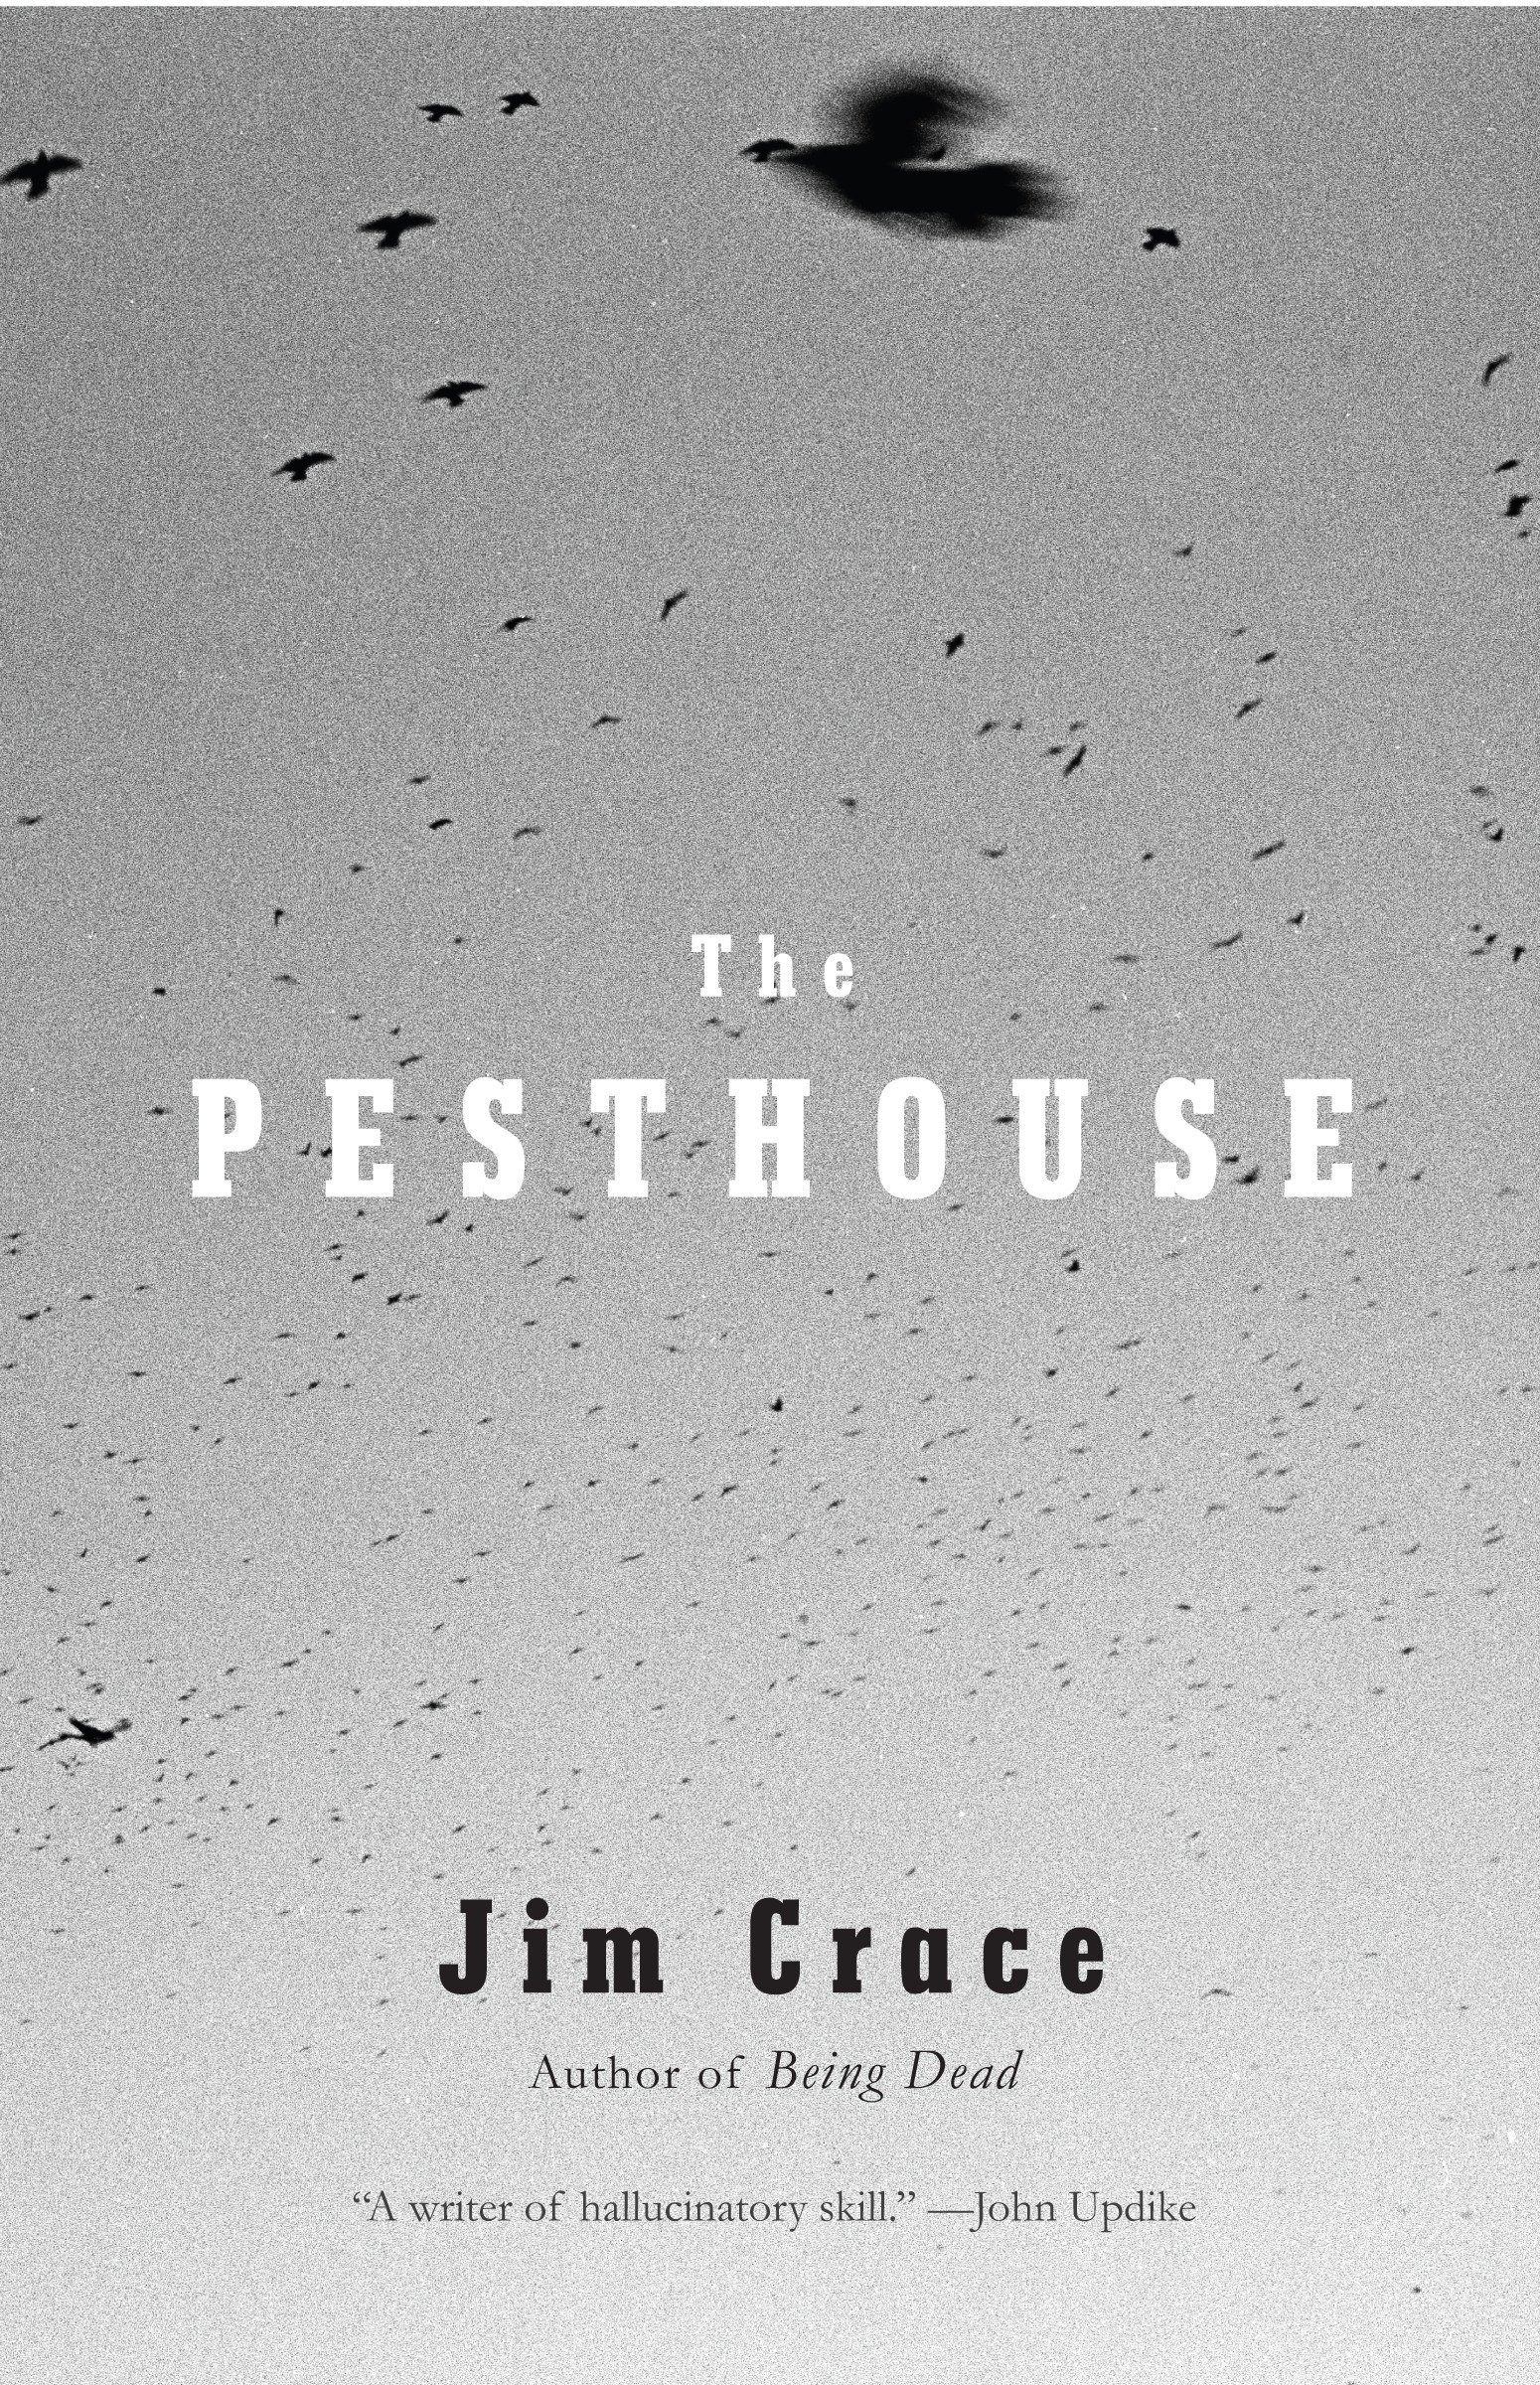 Harvest Jim Crace Epub